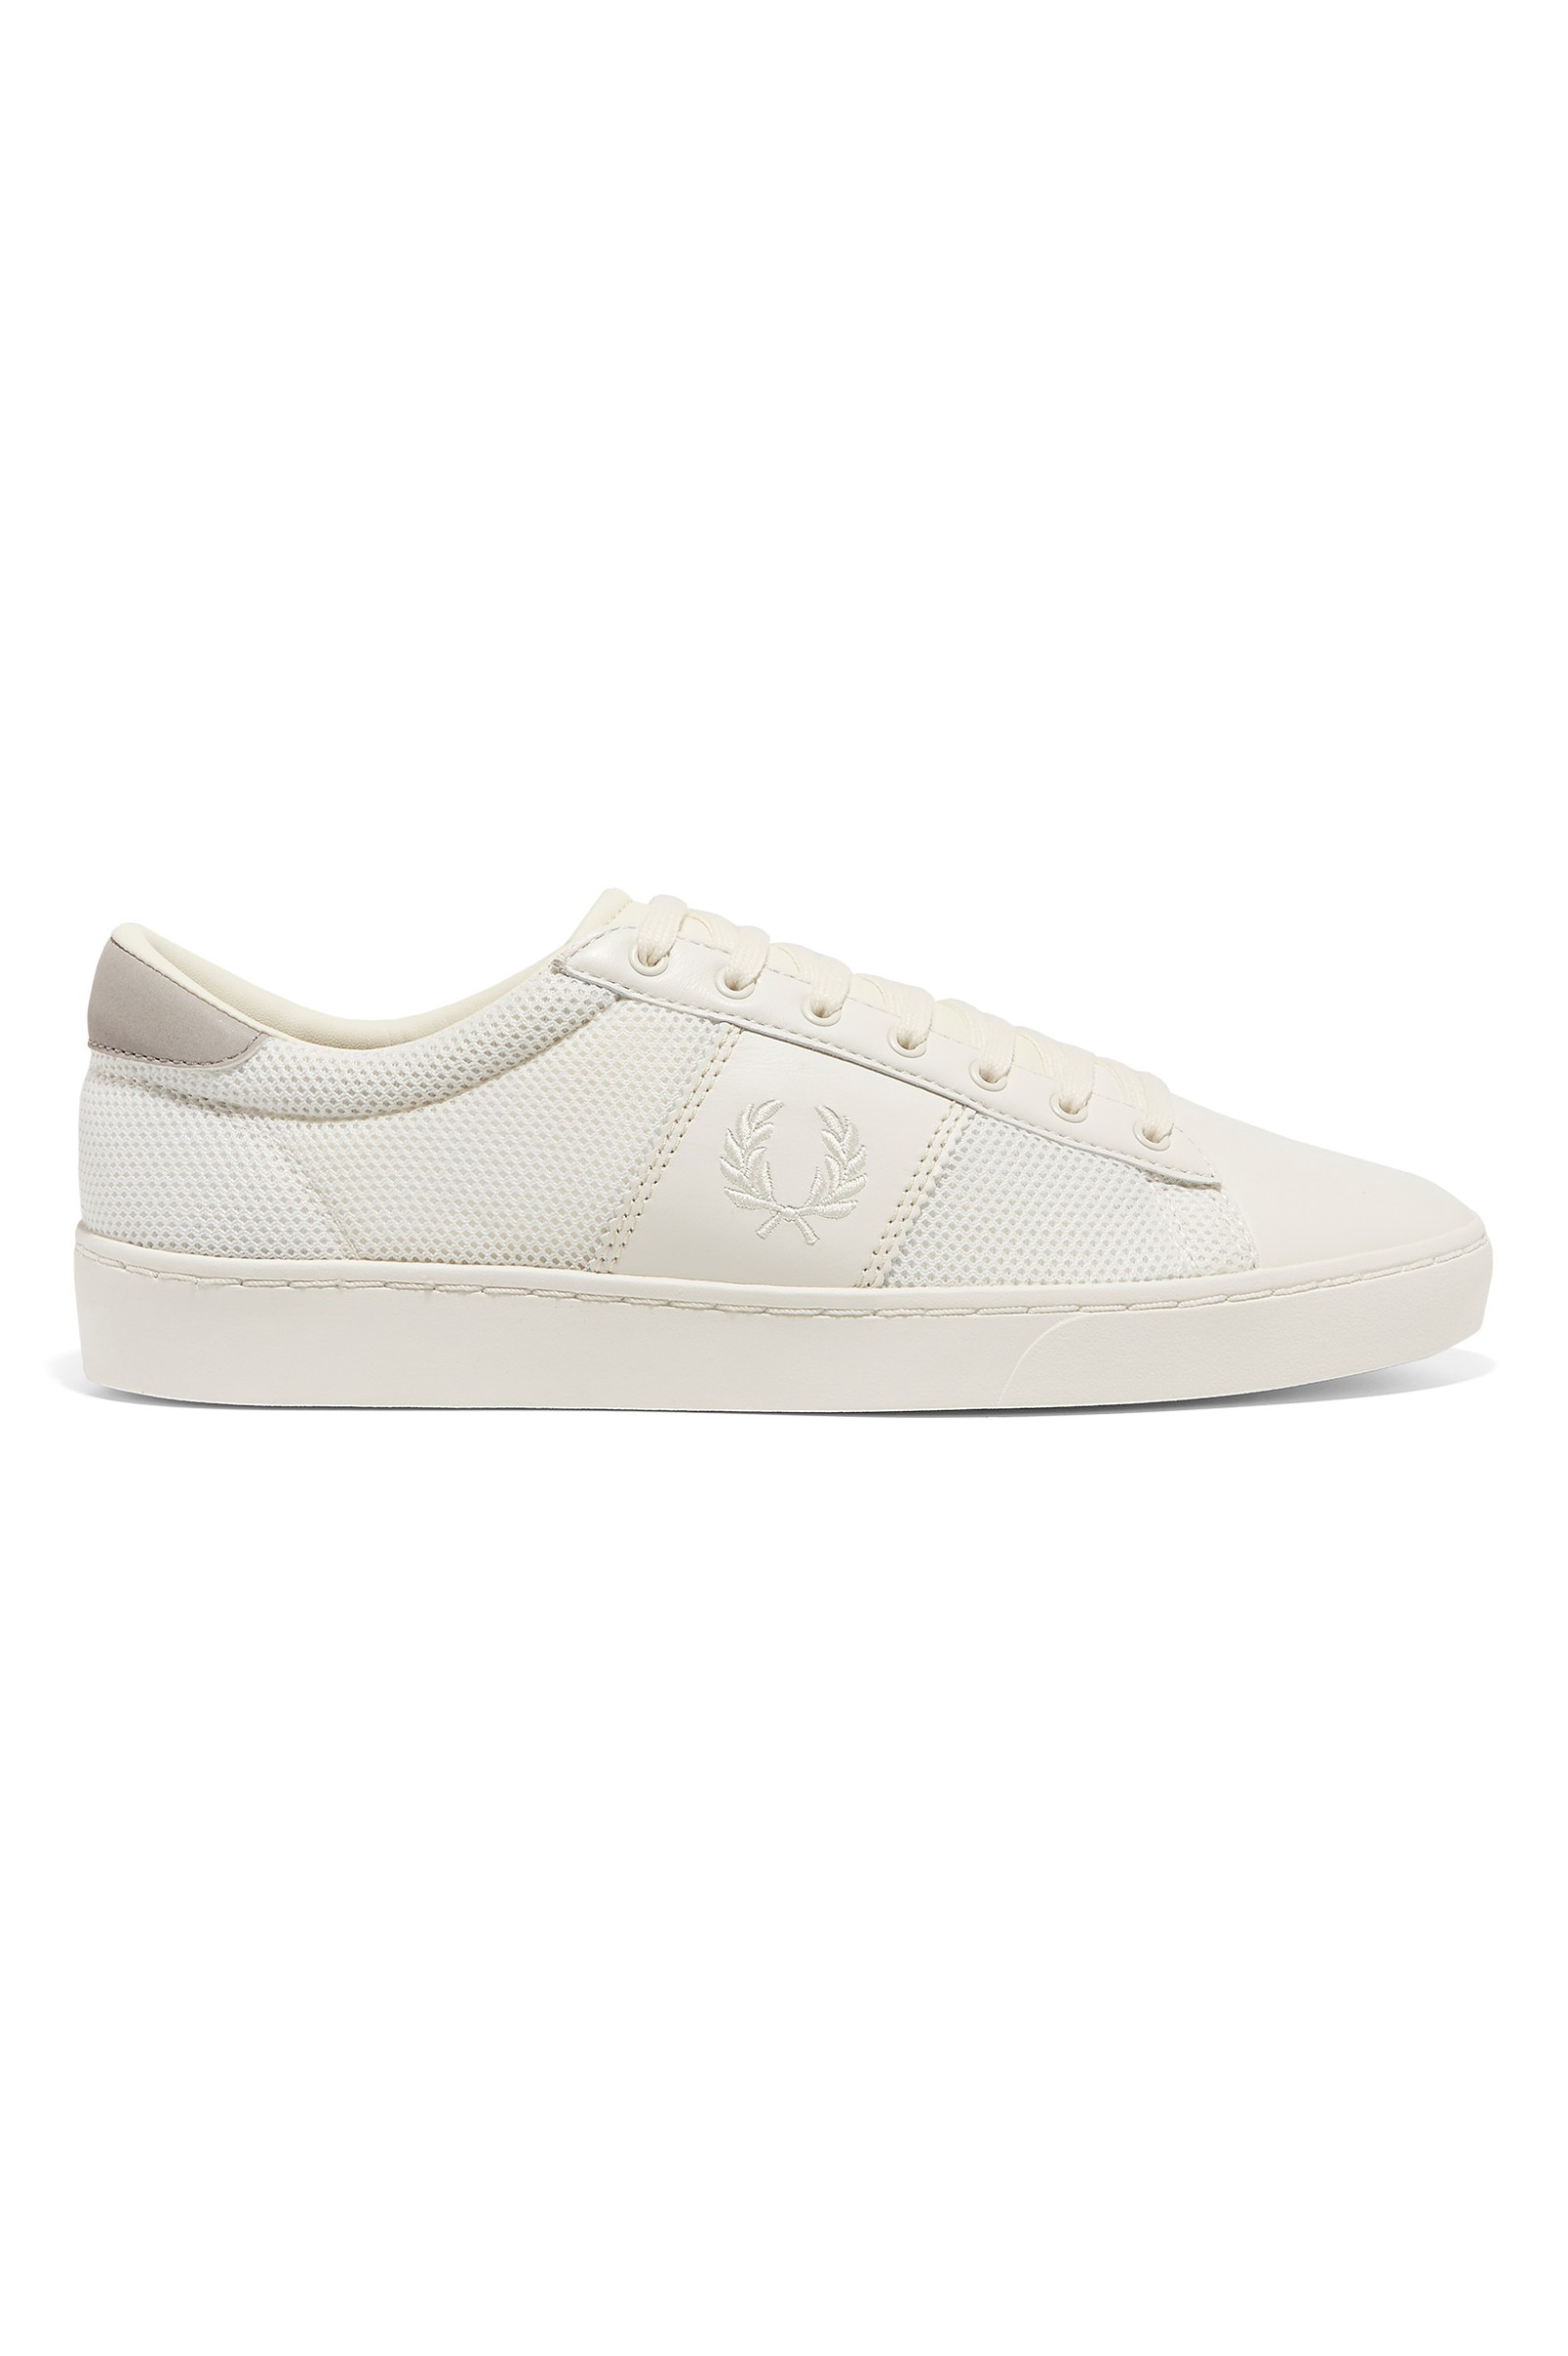 Fred Perry Spencer Maille Formateurs En Cuir Blanc - 760 IywSdQ